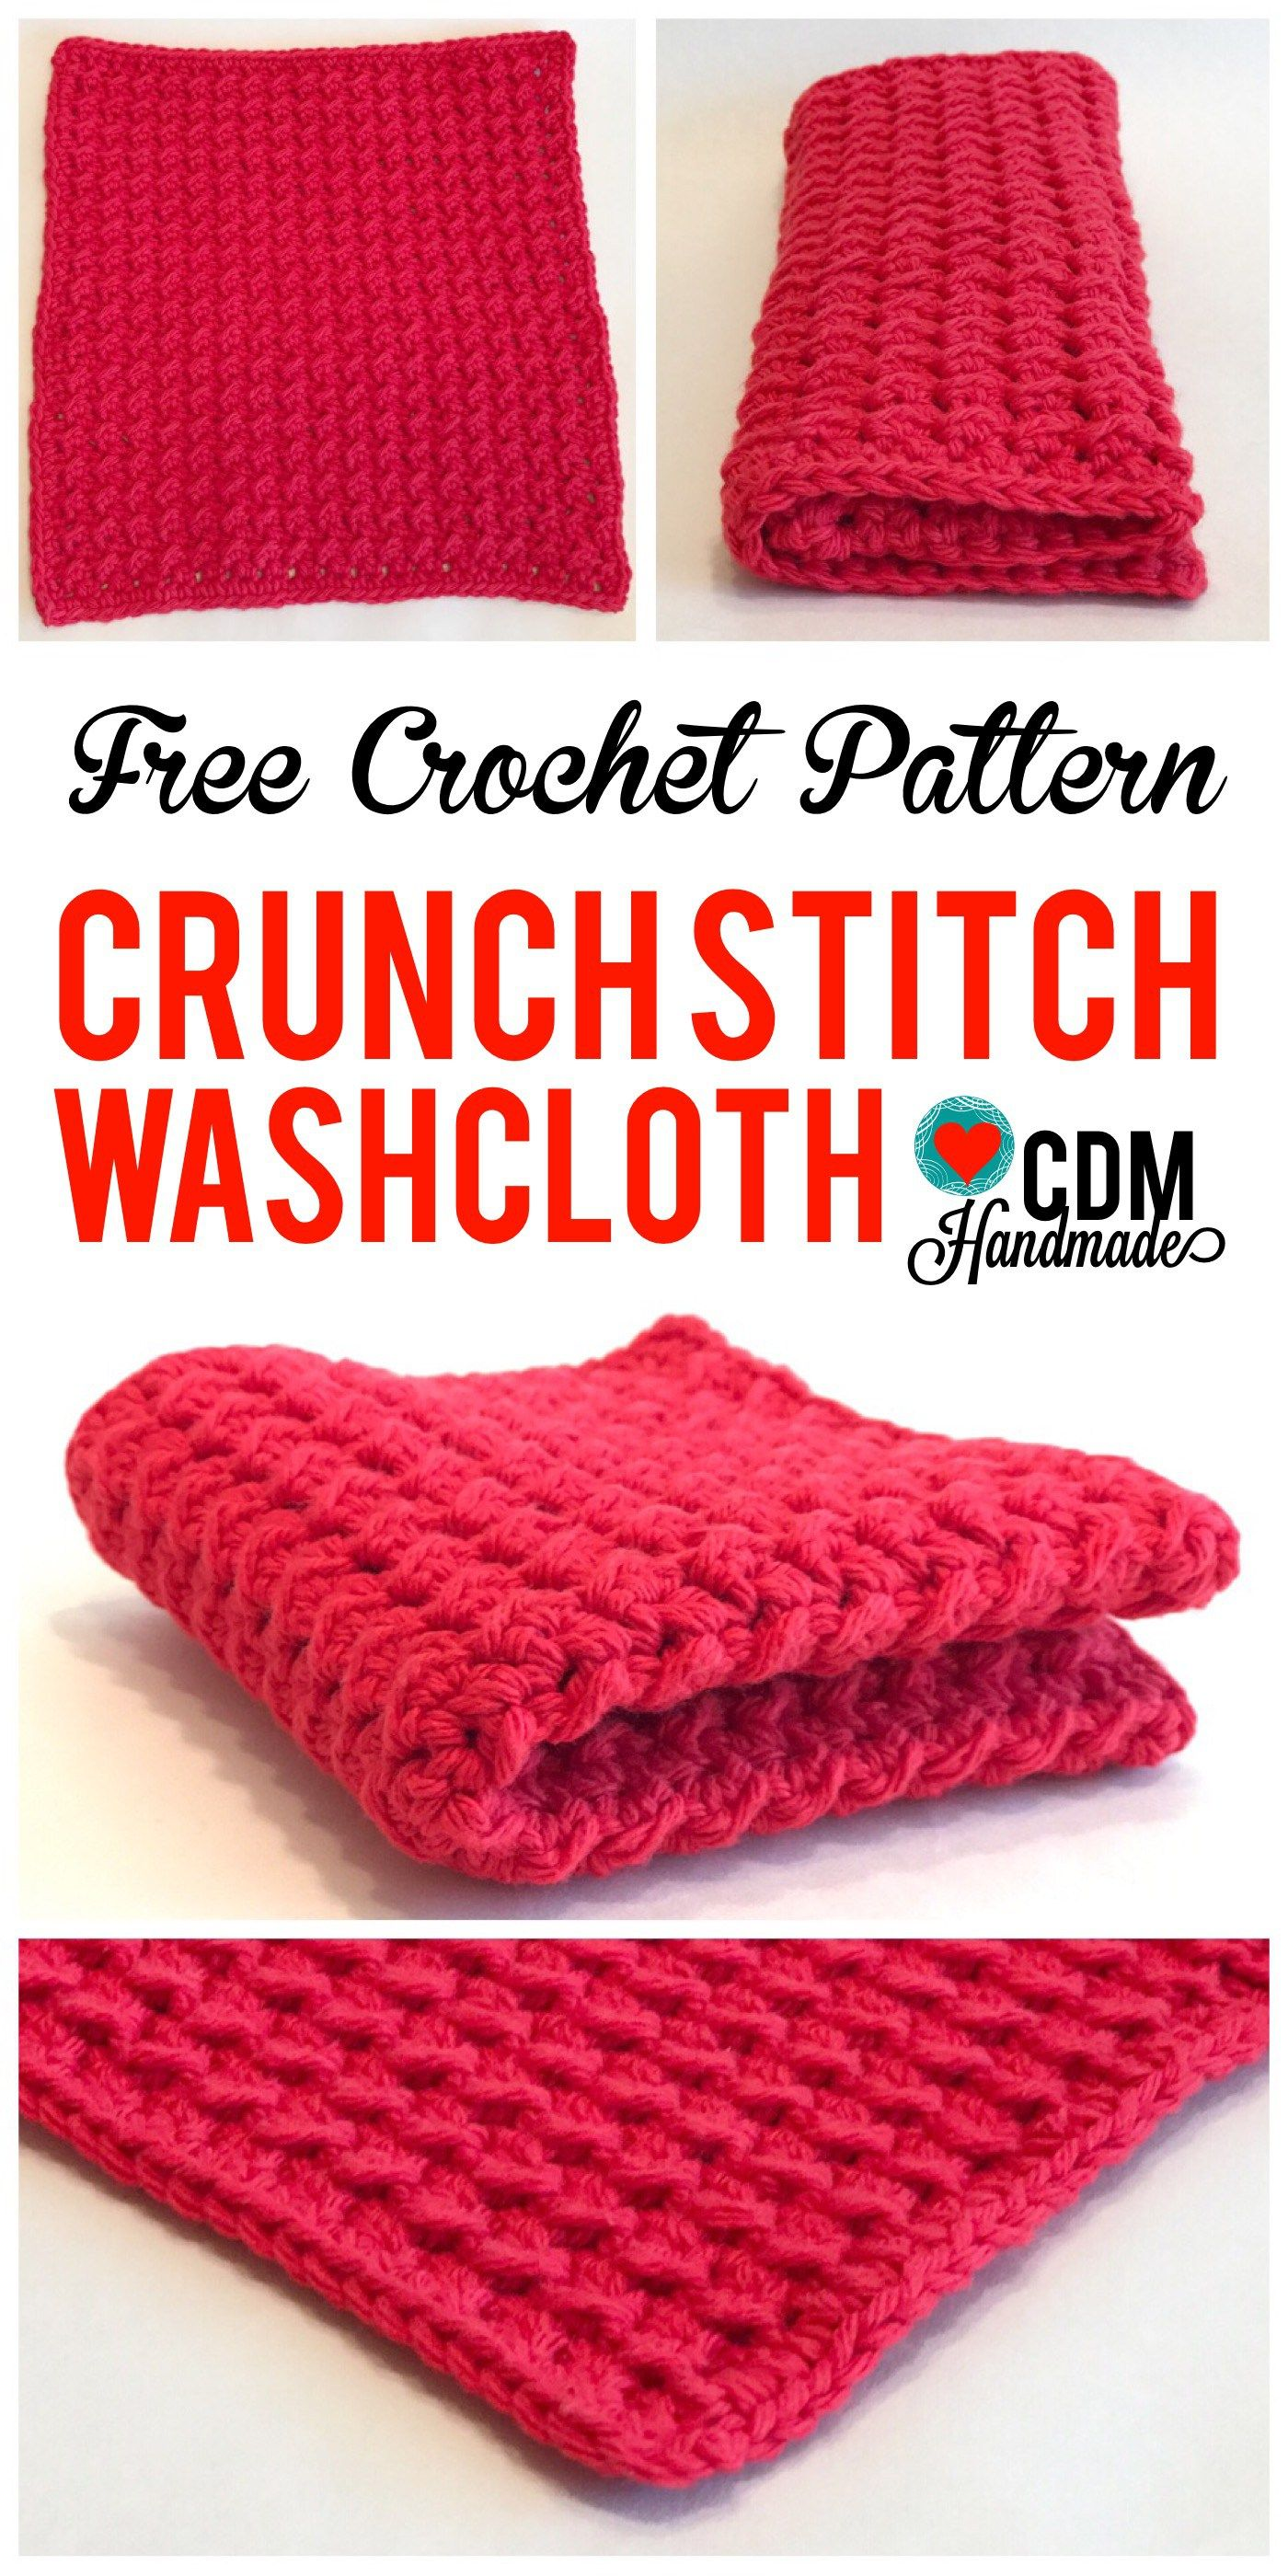 Check out this quick and easy free crochet washcloth pattern for check out this quick and easy free crochet washcloth pattern for my crunch stitch crochet washcloth bankloansurffo Choice Image